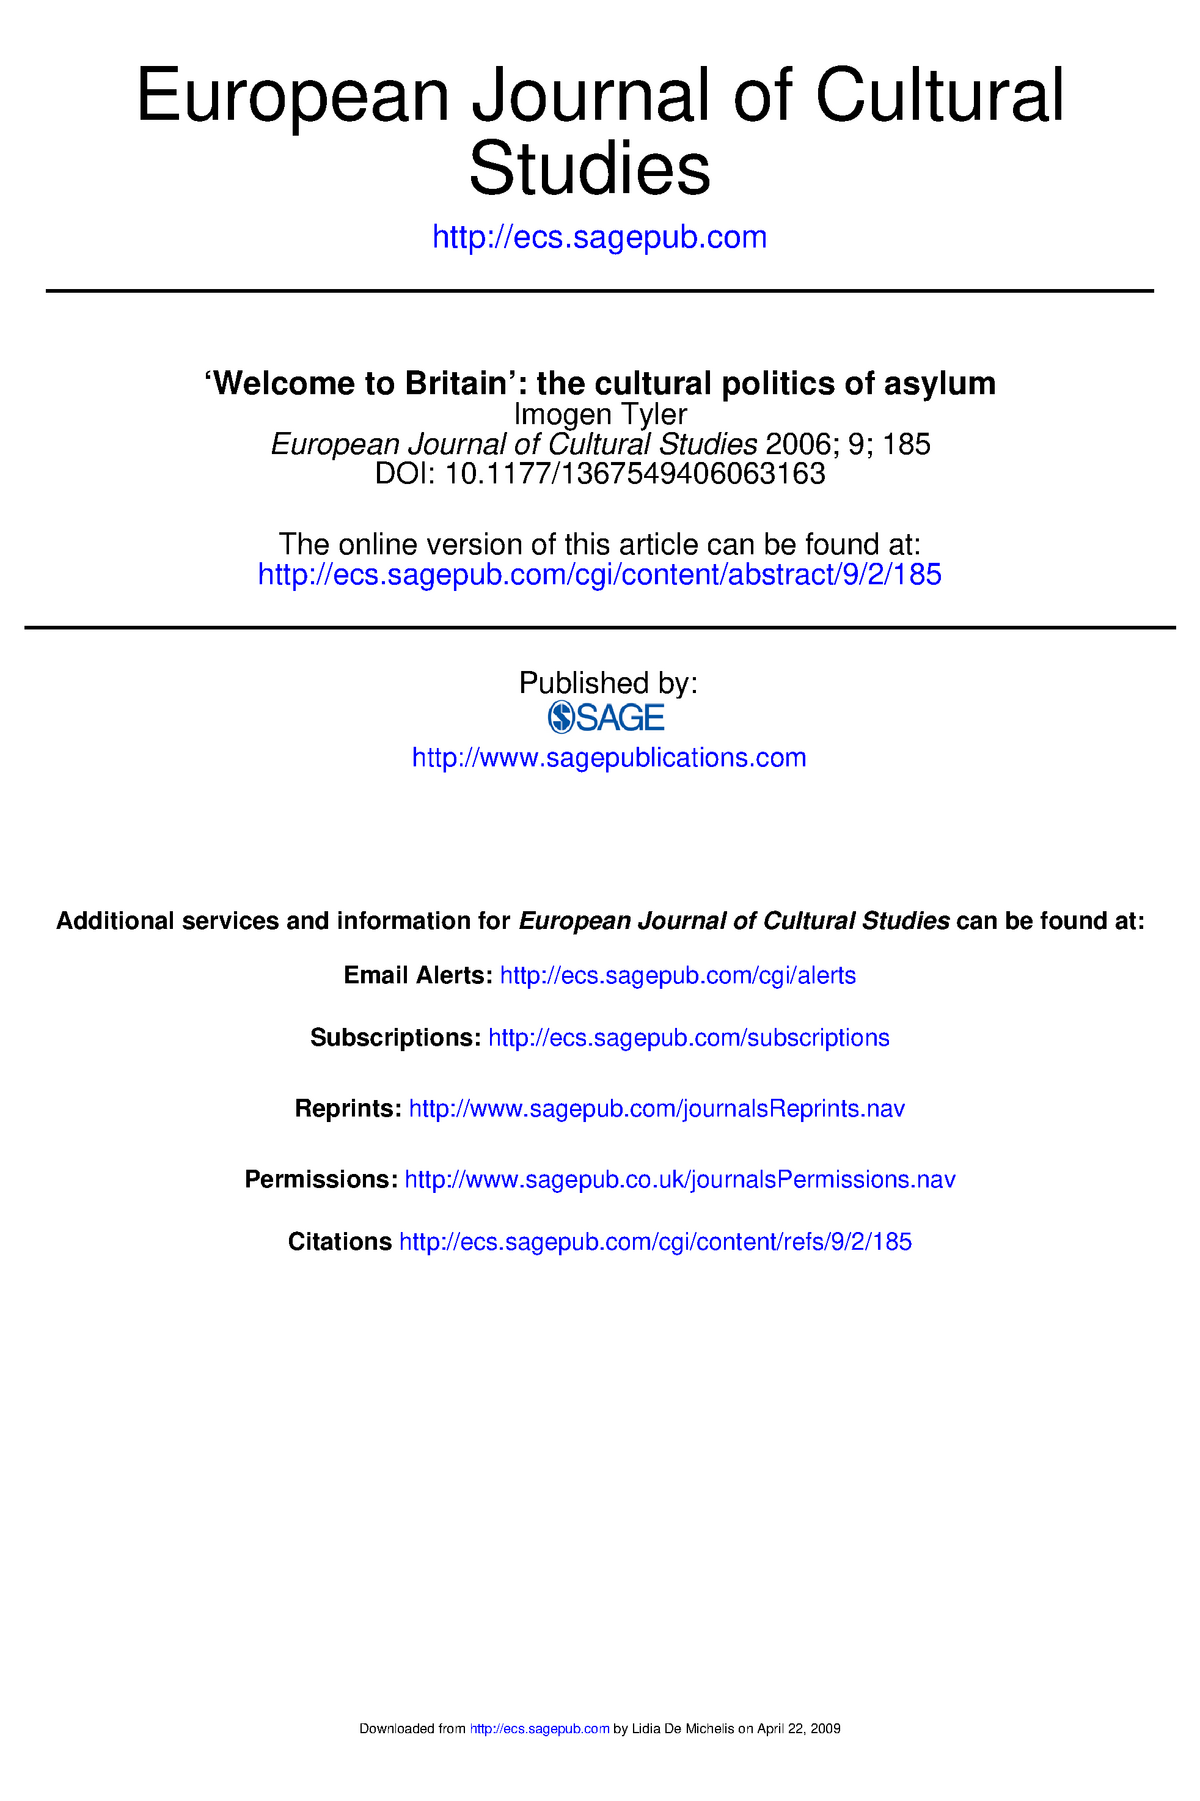 Welcome to Britain cultural politics asylum m1 - L-12: Mediazione